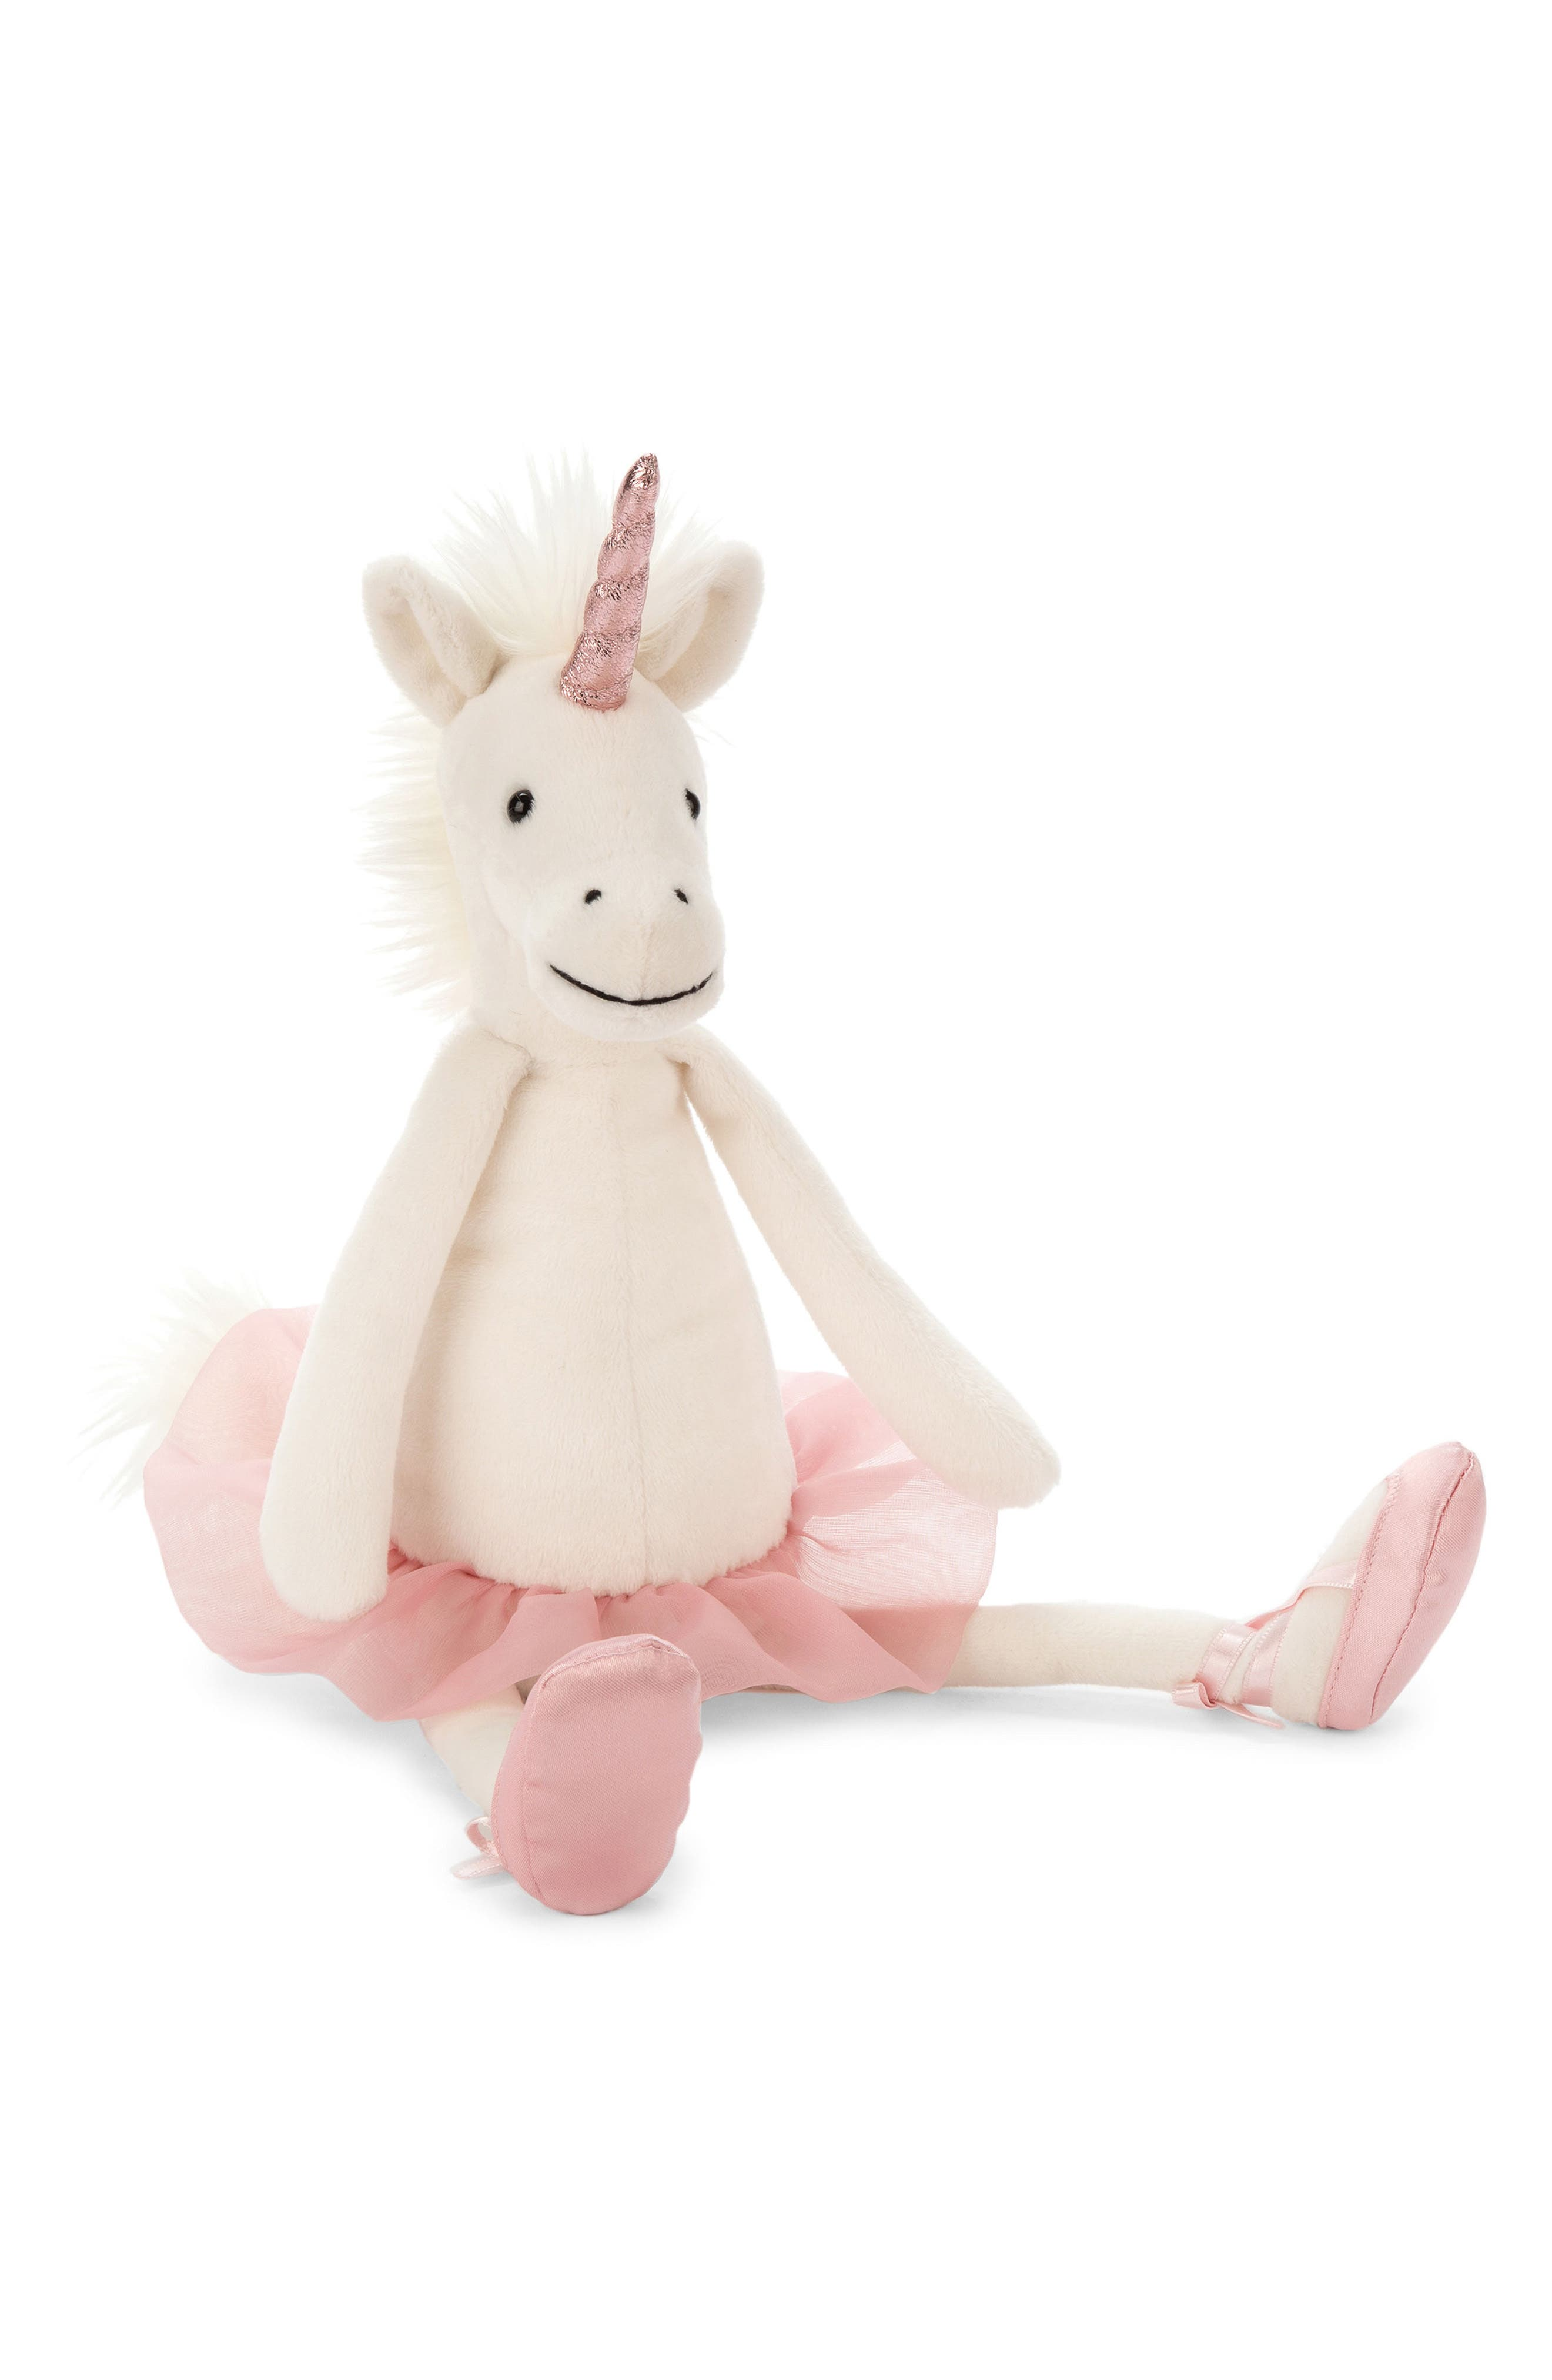 Dancing Darcy Unicorn Stuffed Animal,                             Main thumbnail 1, color,                             Cream / Pink